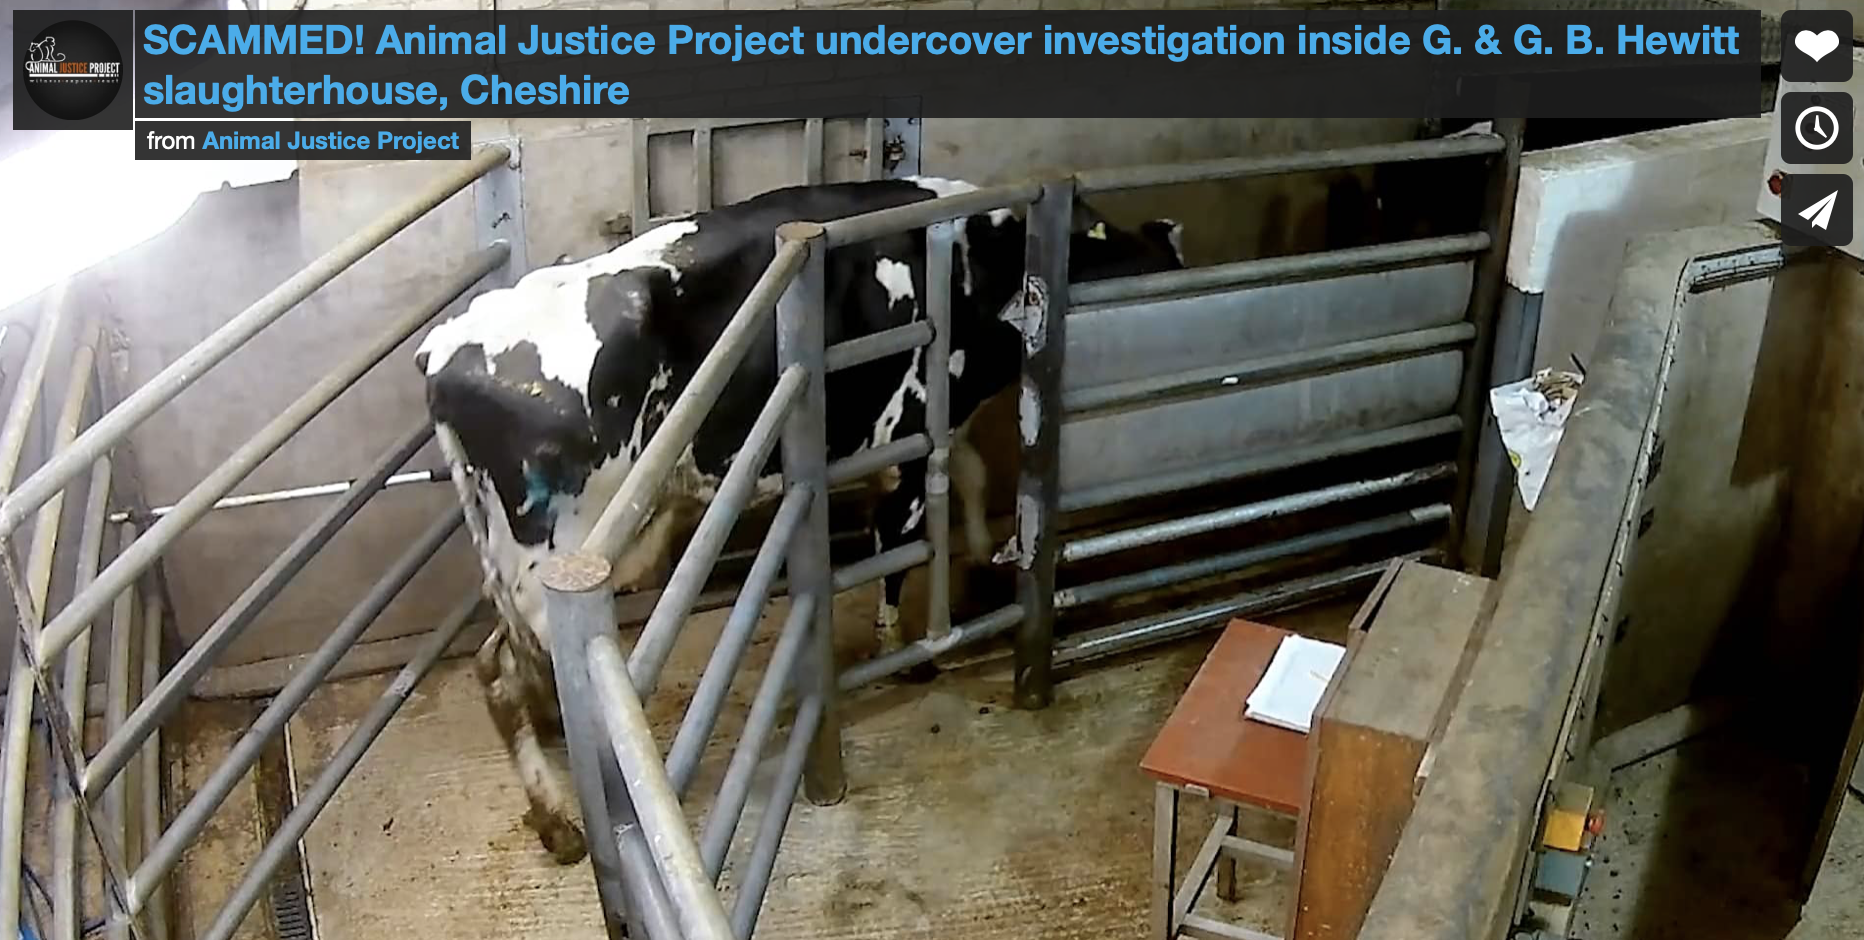 SCAMMED! Animal Justice Project investigation inside G. & G. B. Hewitt slaughterhouse, Cheshire